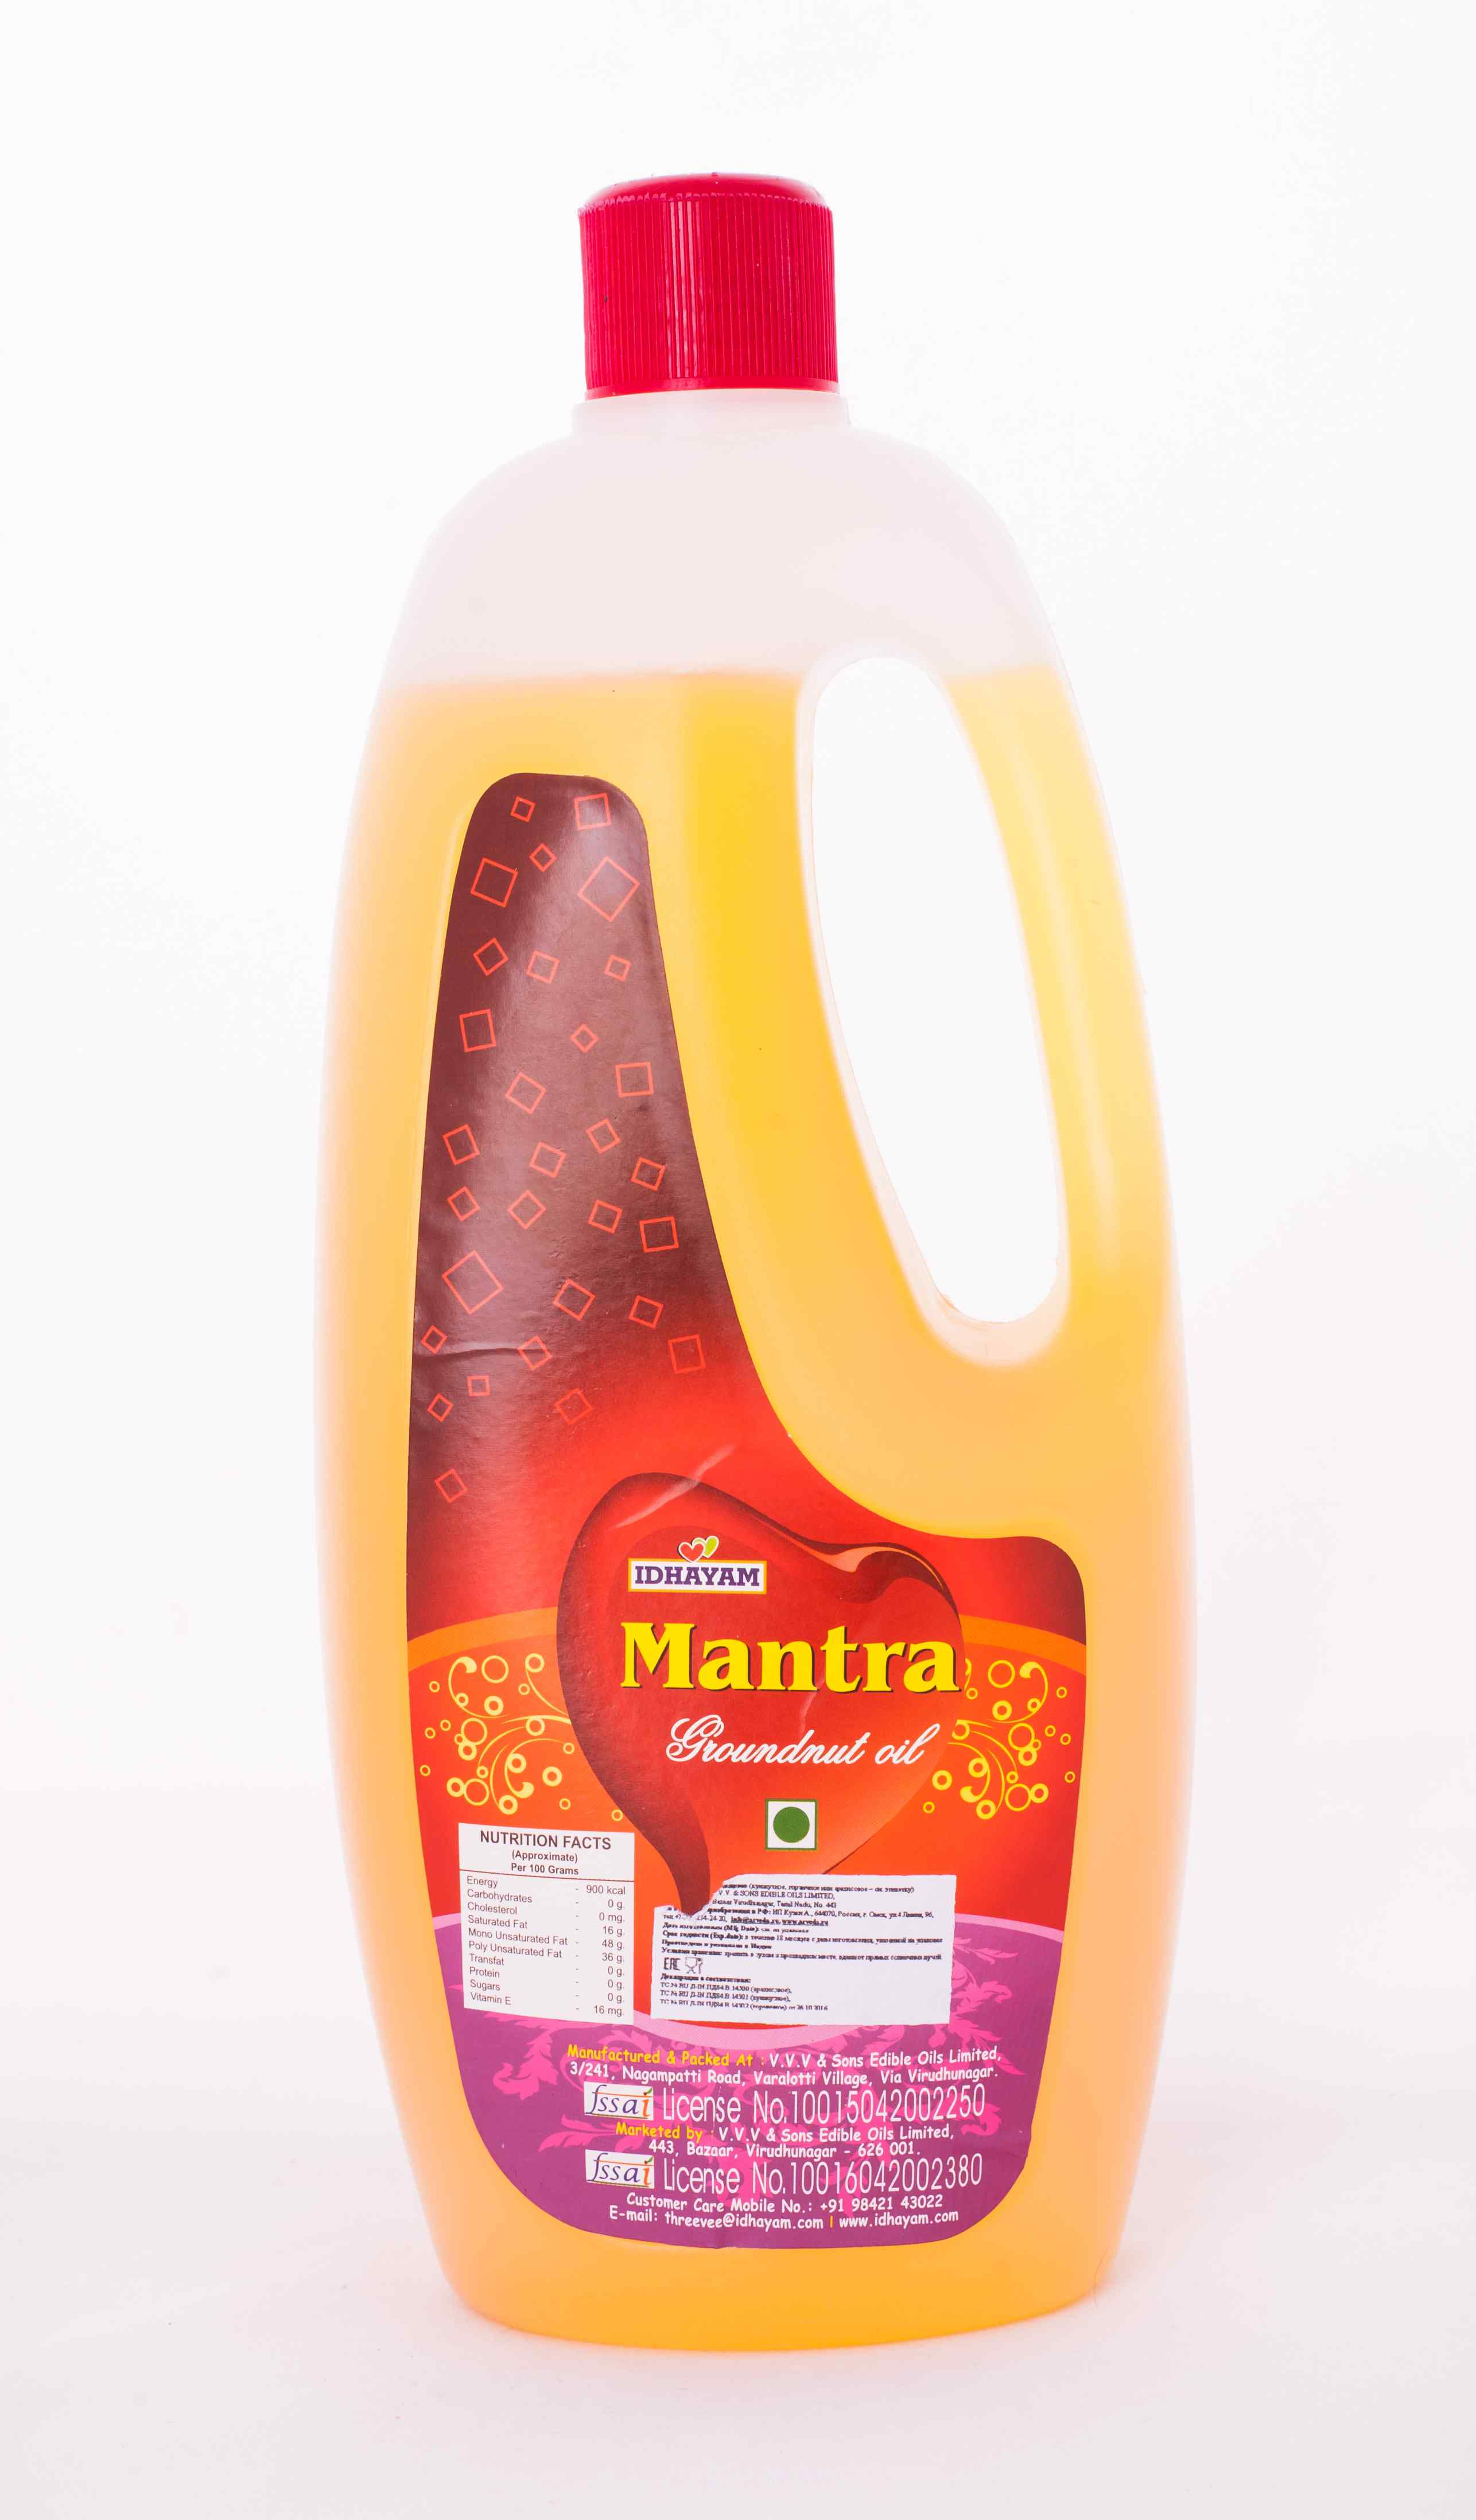 Арахисовое масло Мантра 1 л/Idhayam Mantra Peanut Cooking Oil 1 Litre